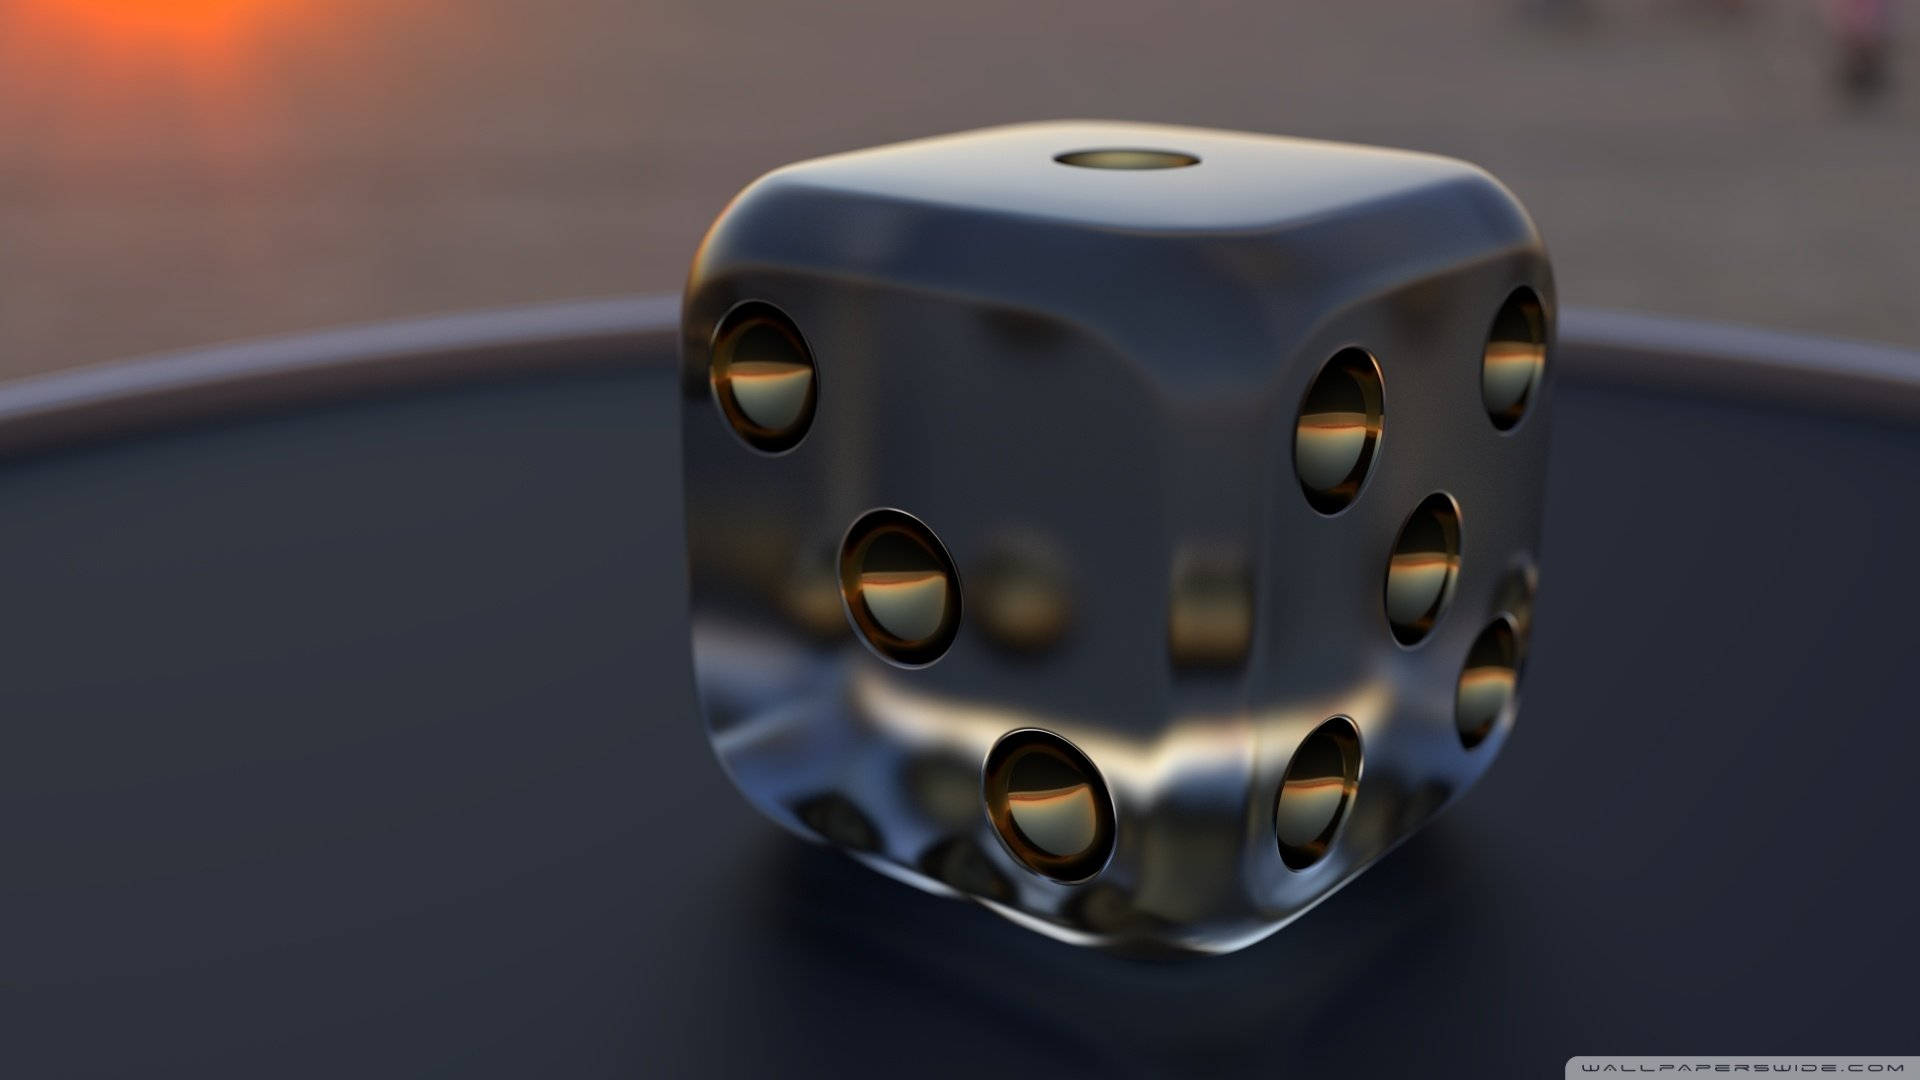 dice Full HD Wallpaper and Background Image  1920x1080